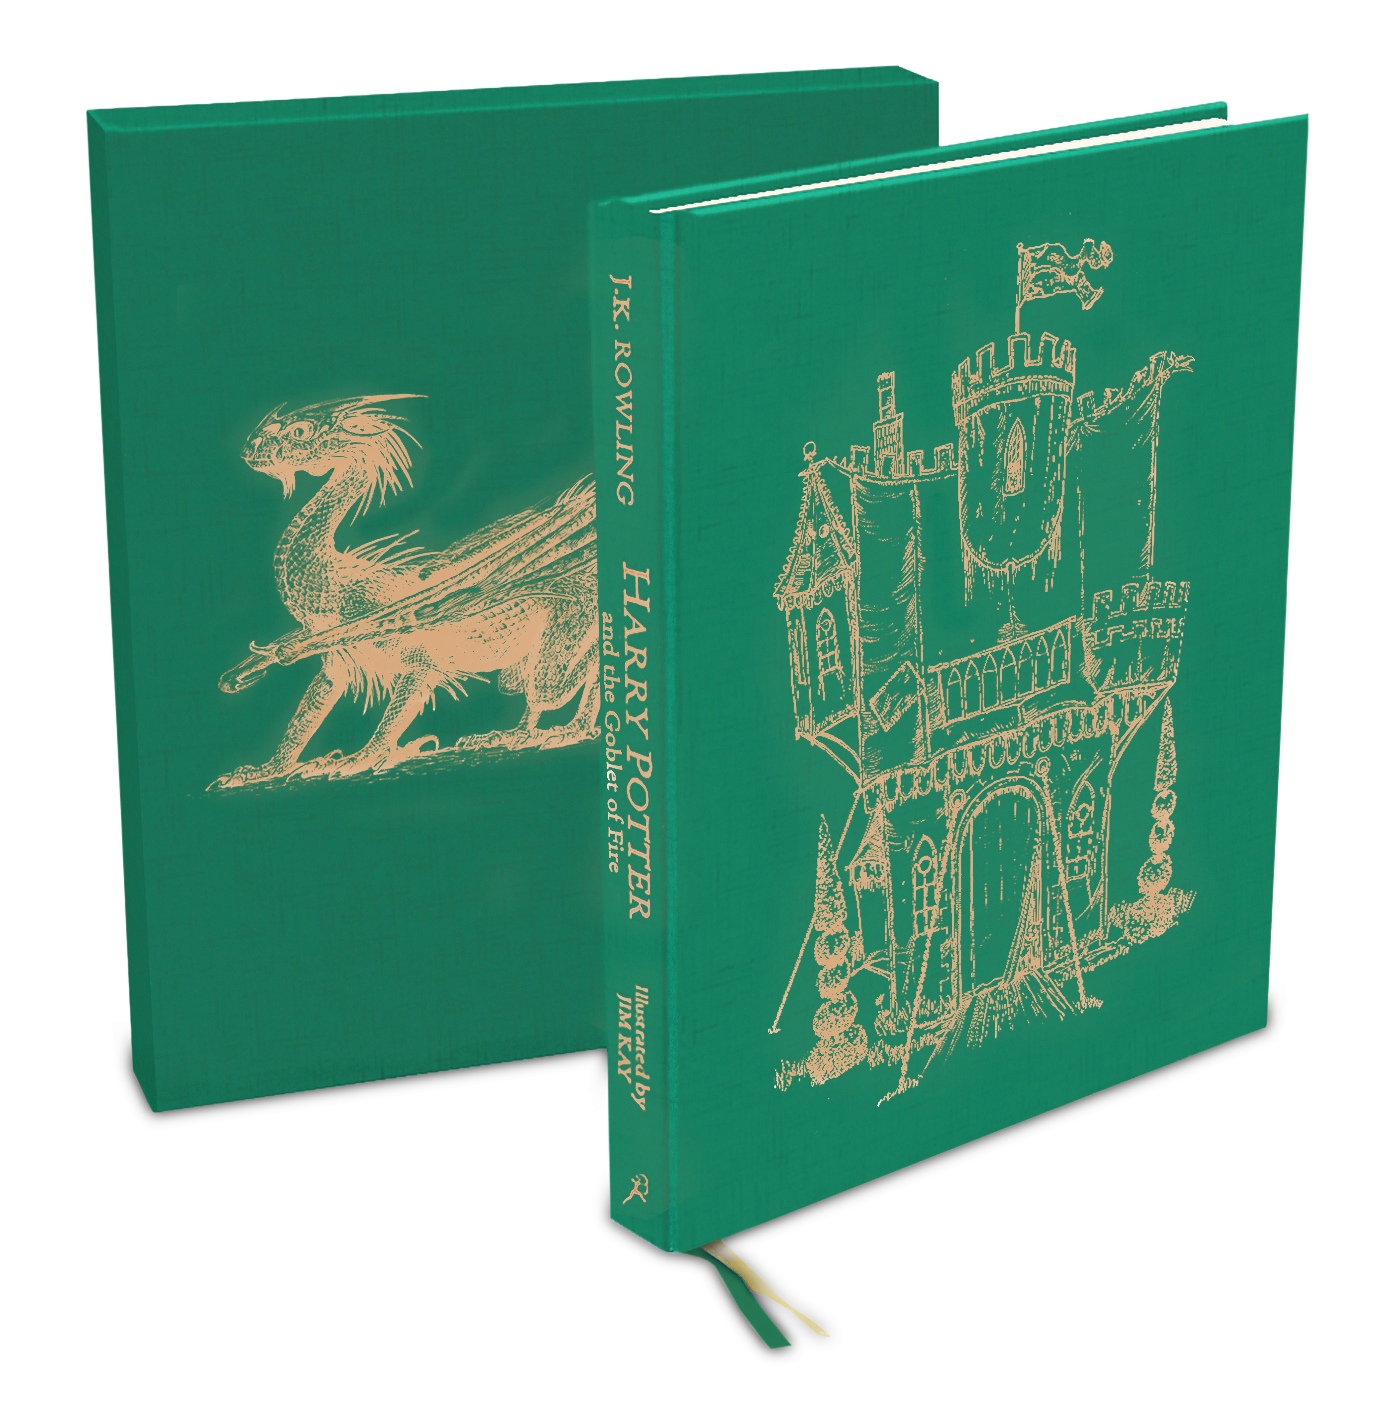 La couverture Deluxe de Harry Potter 4 illustré chez Bloomsury